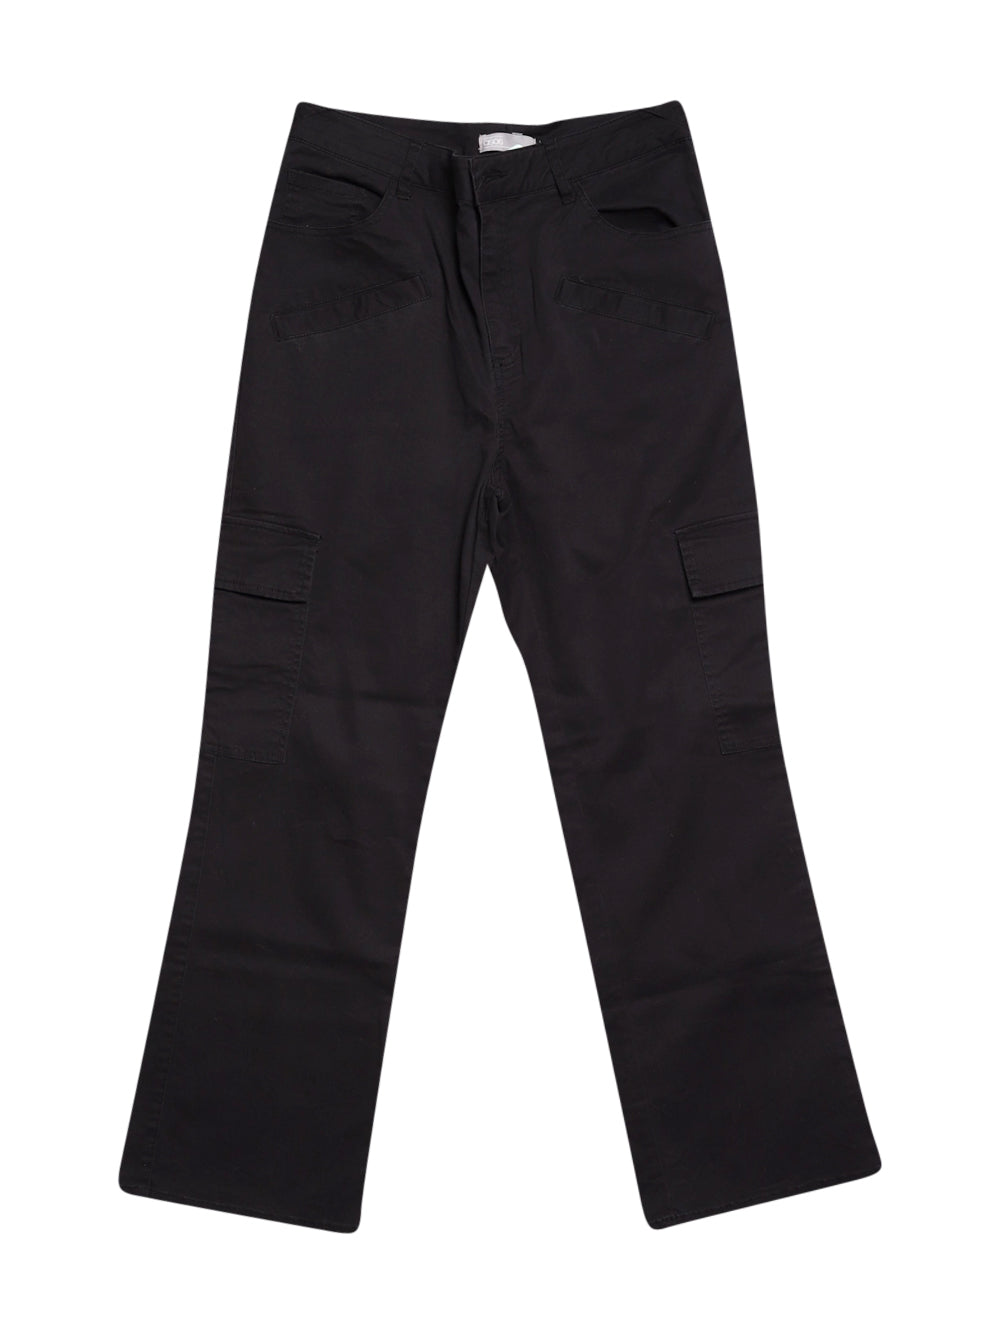 Front photo of Preloved Asos Black Woman's trousers - size 10/M